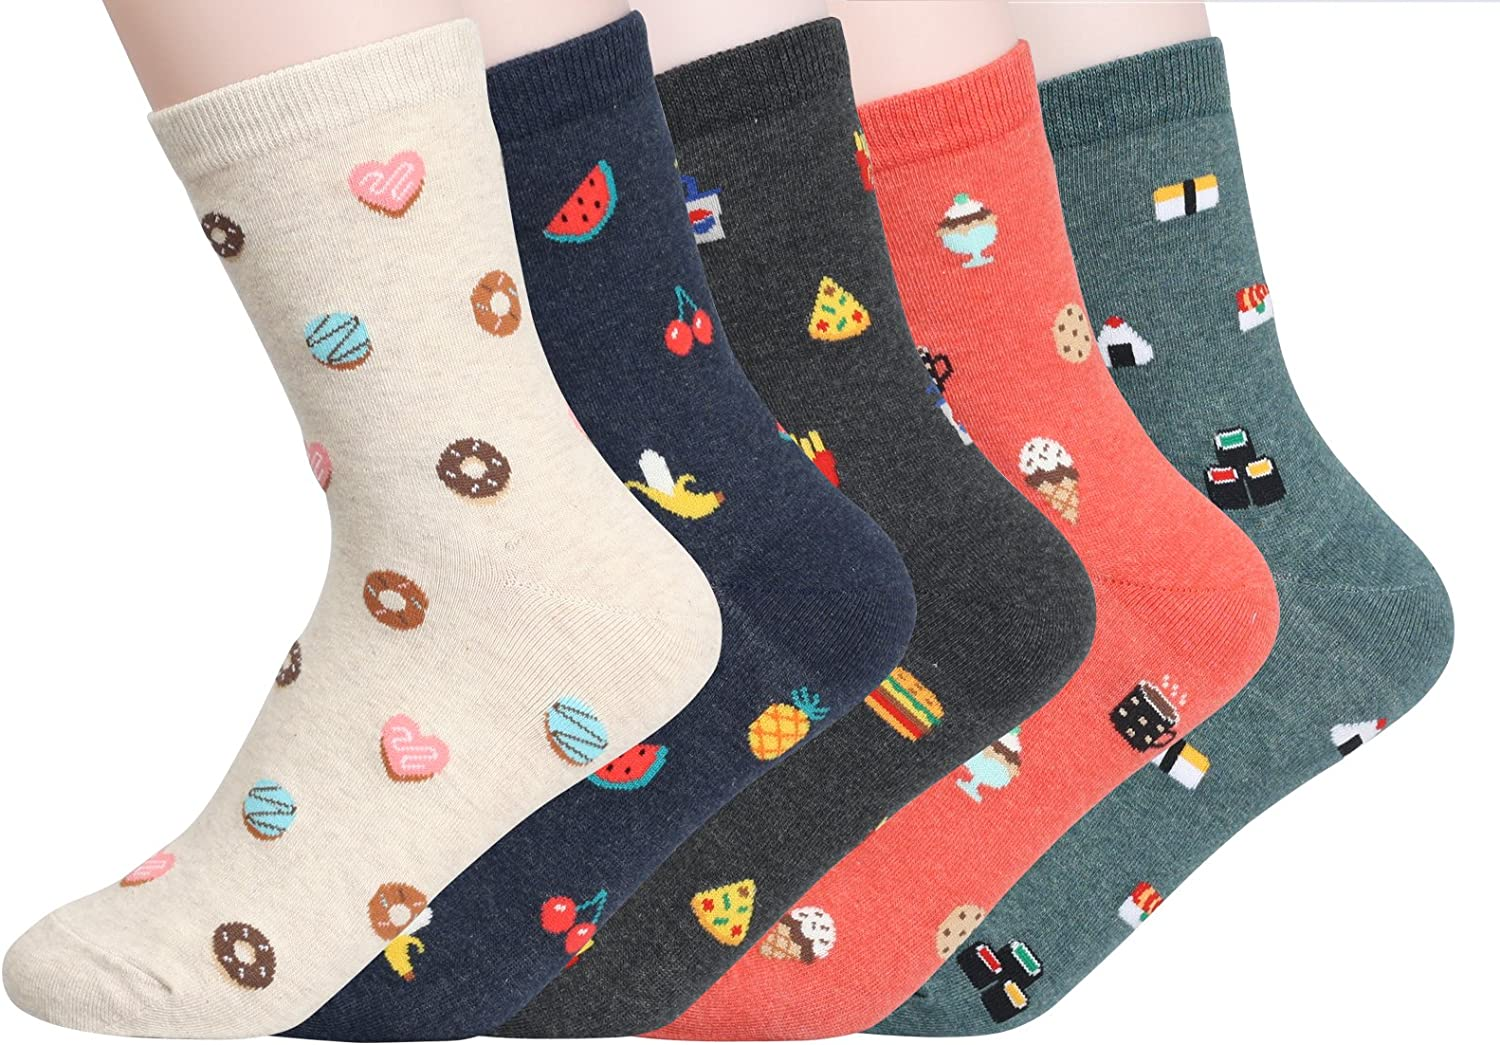 Customonaco Women's Cool Animal Fun Crazy Socks